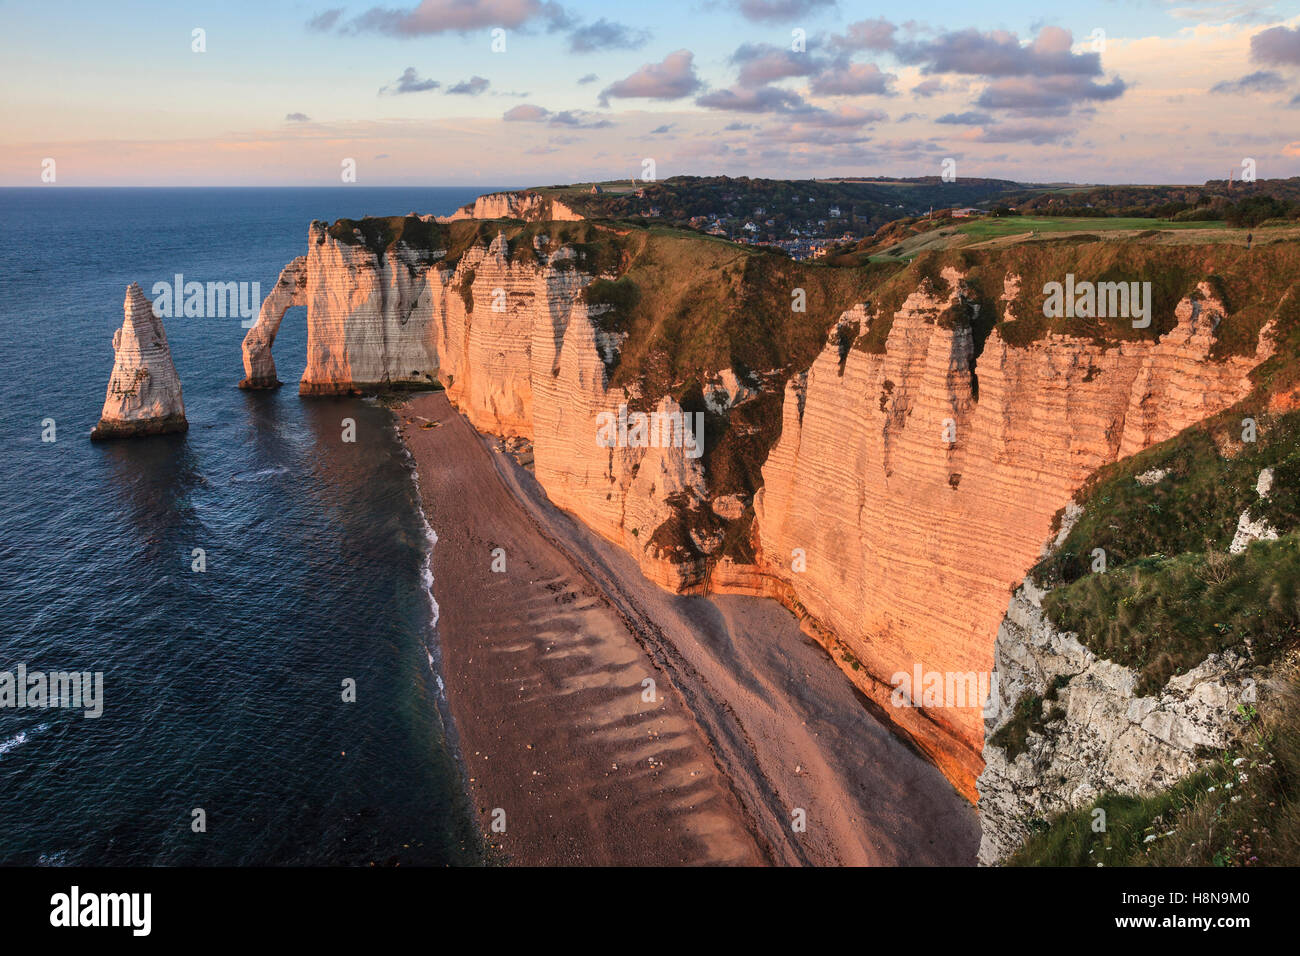 Evening light on the Aval Cliff and l'Aiguille (the Needle) at Etretat, Normandy, France - Stock Image